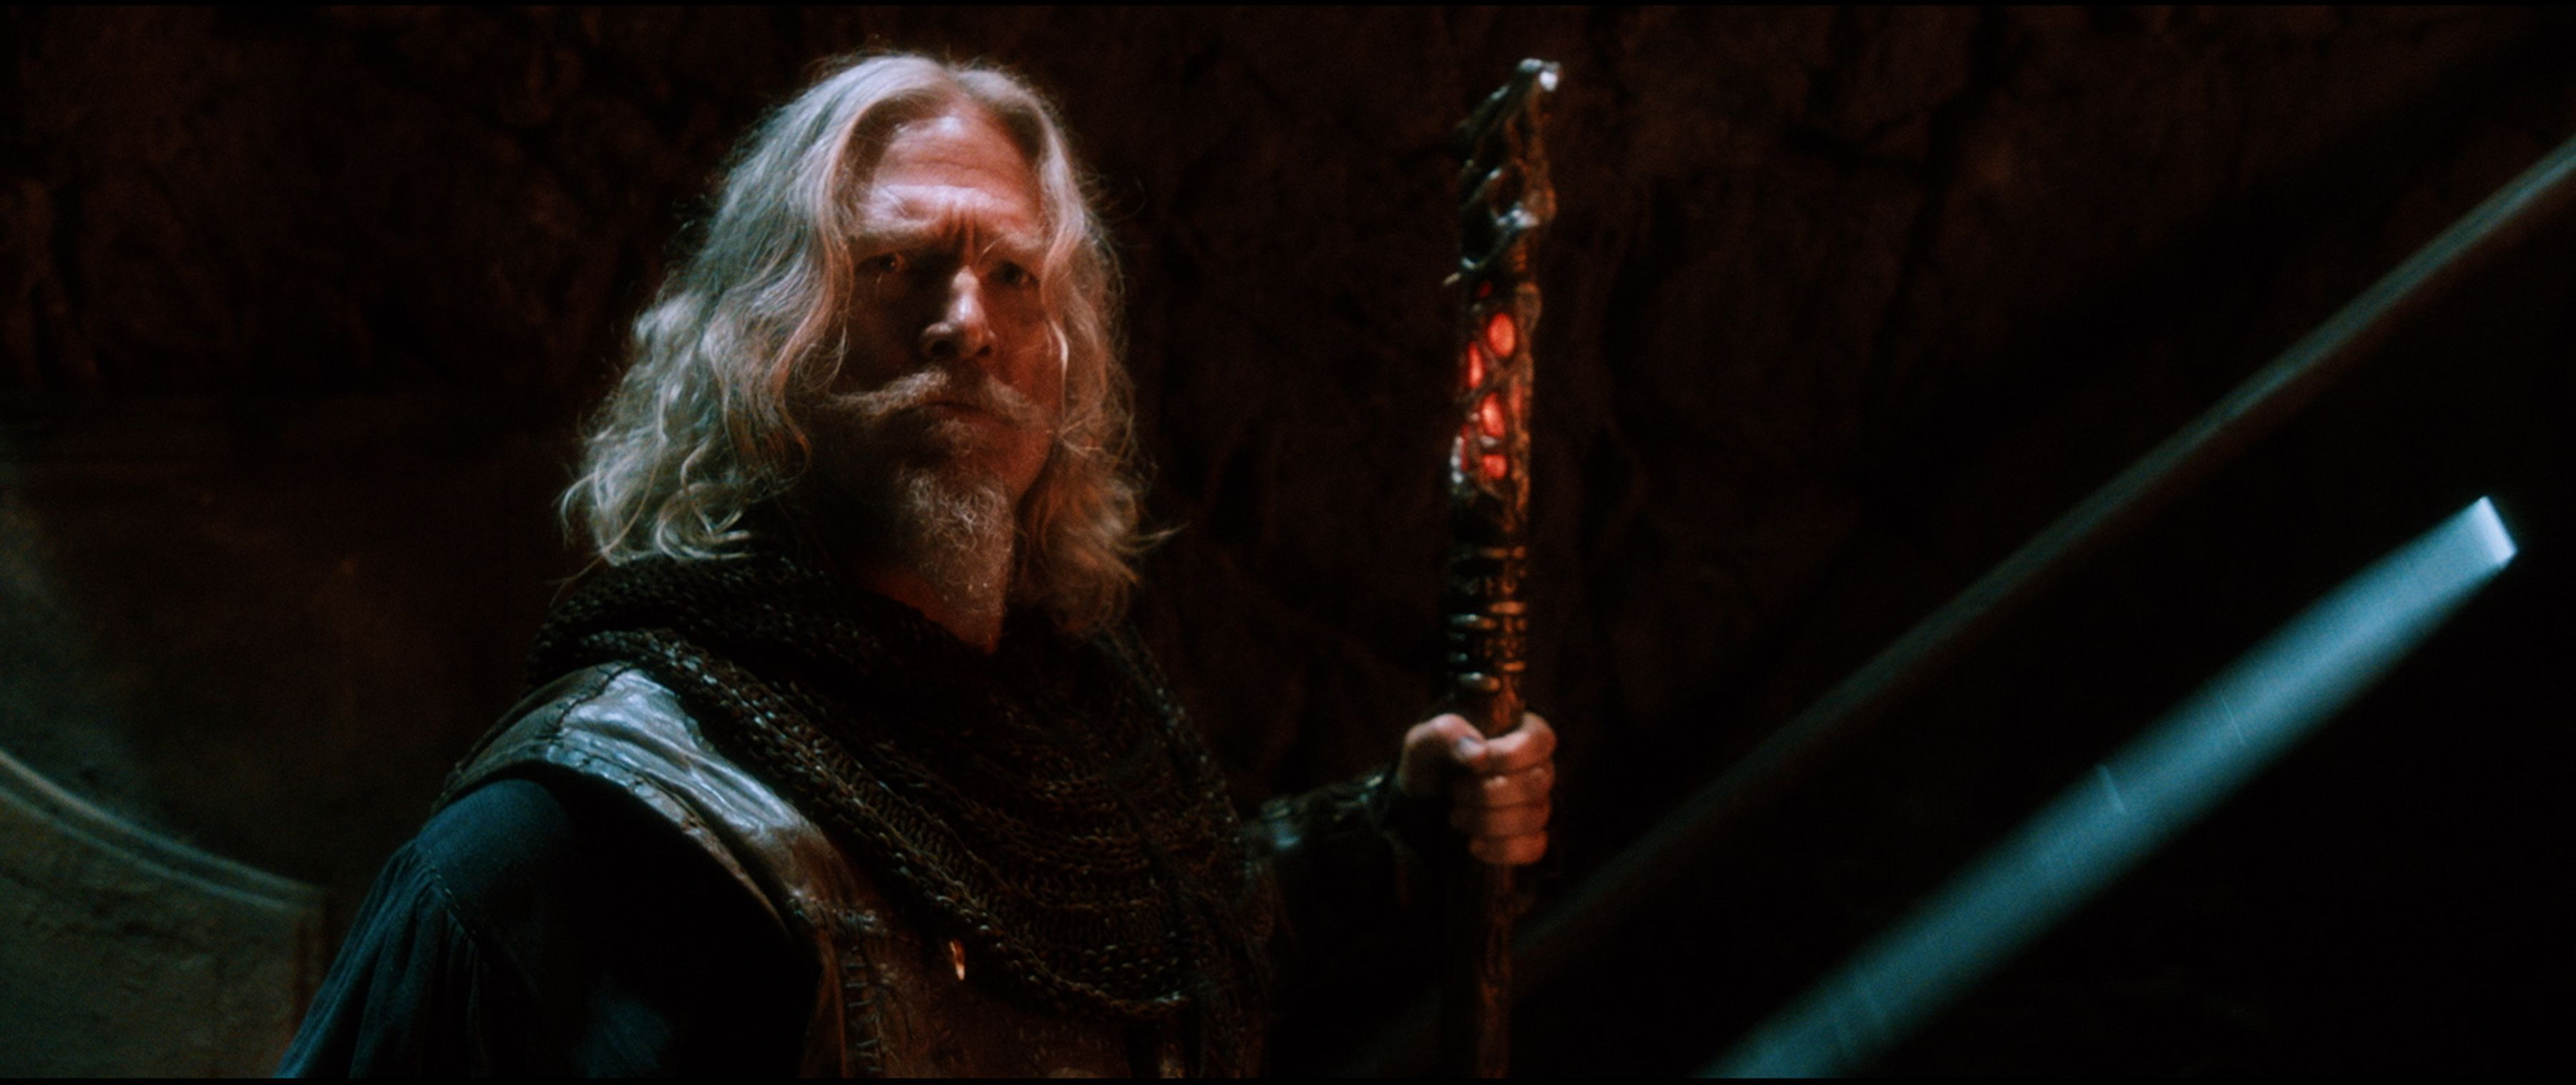 seventh son 2014 full movie download